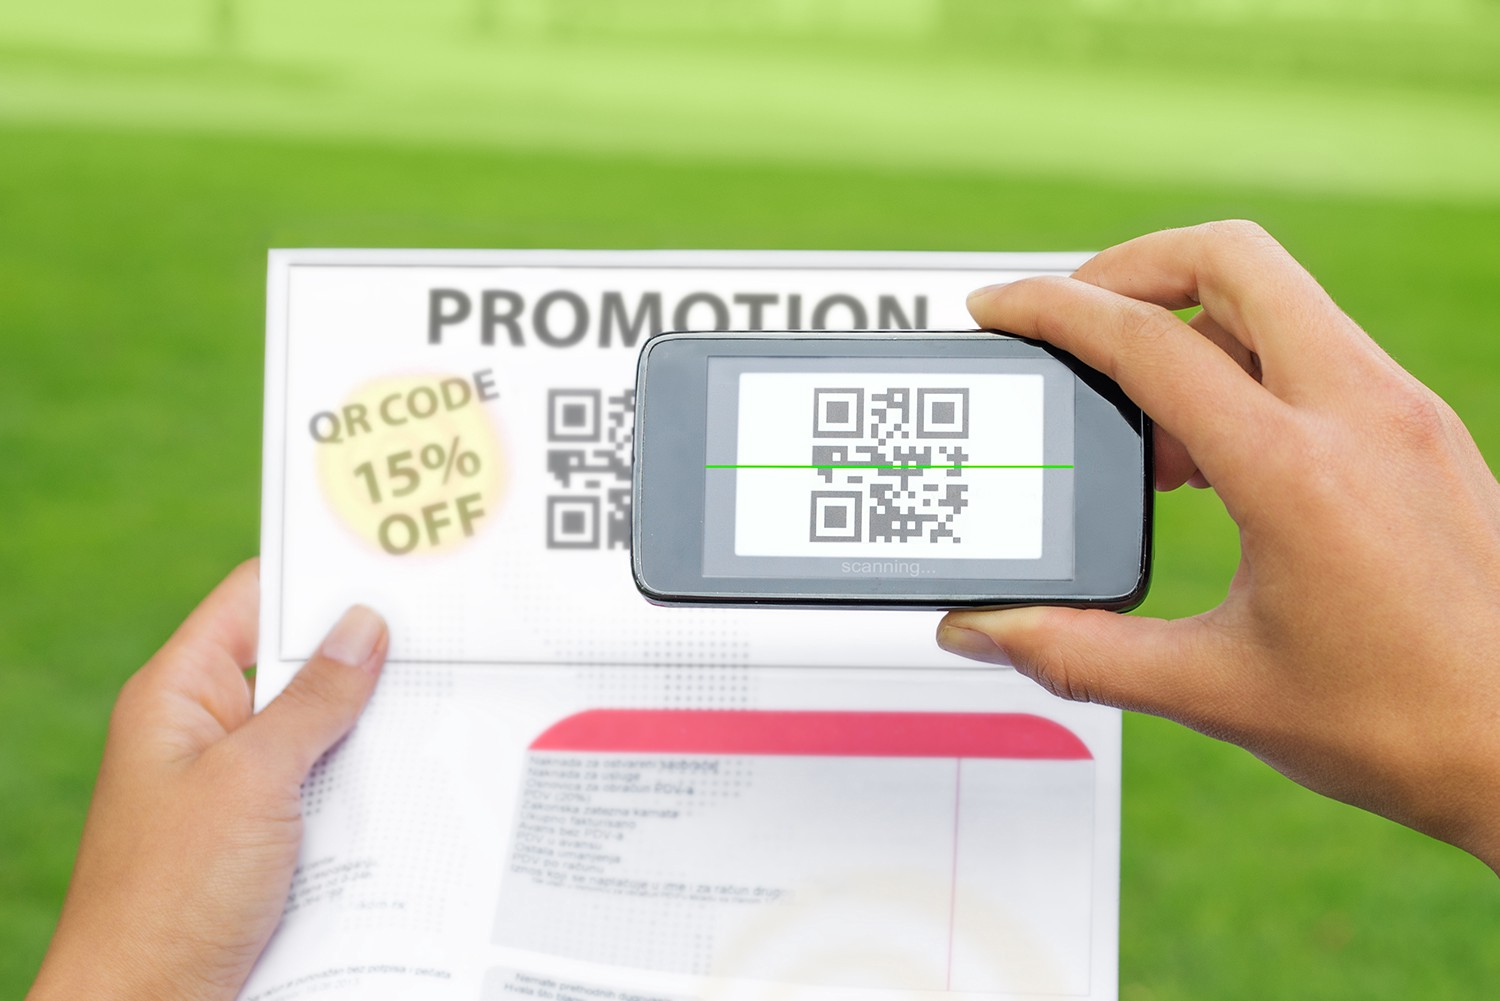 Phone scanning a promotion on QR